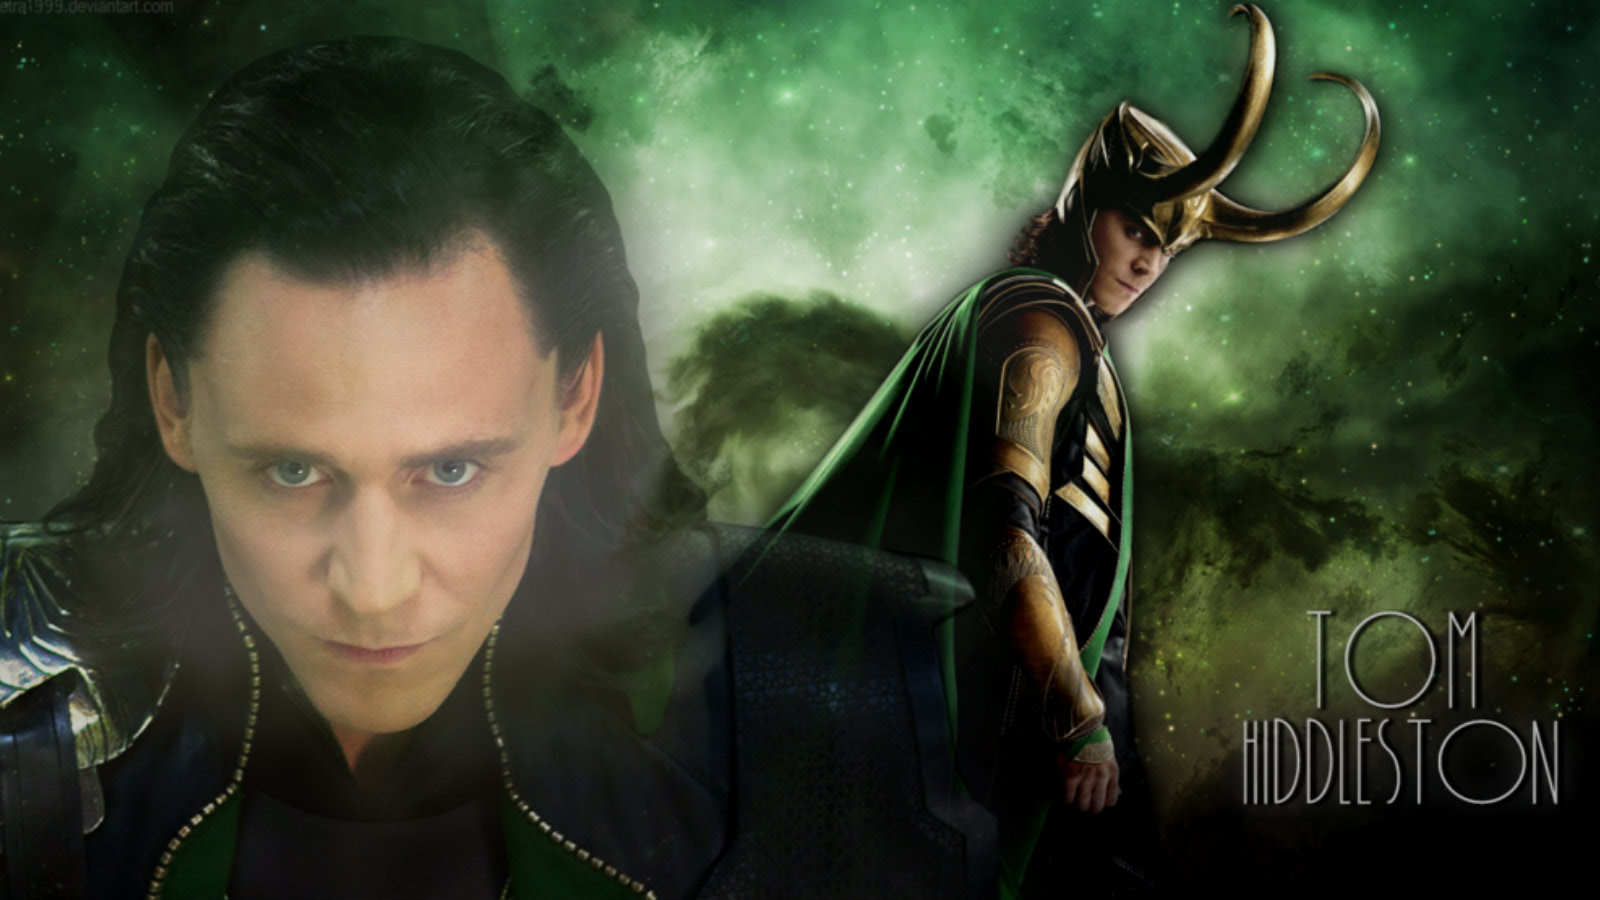 Loki In Thor The Dark World Wallpapers | Wallpapers No Limit